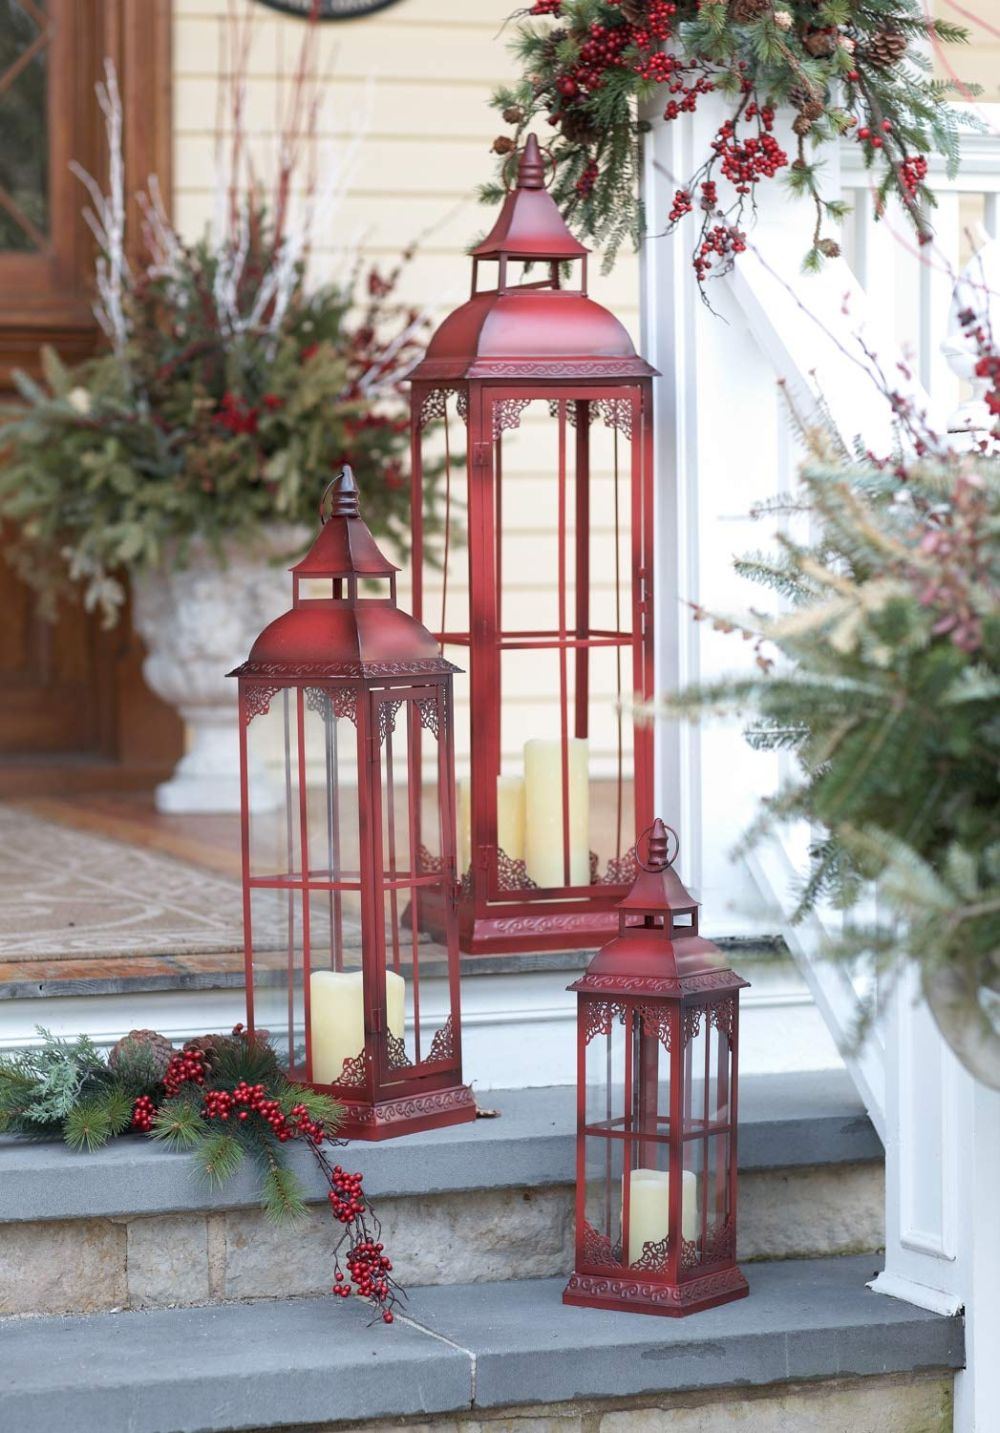 1560499823 912 15 beautiful outdoor lanterns to brighten up your evenings - 15 Beautiful Outdoor Lanterns To Brighten Up Your Evenings